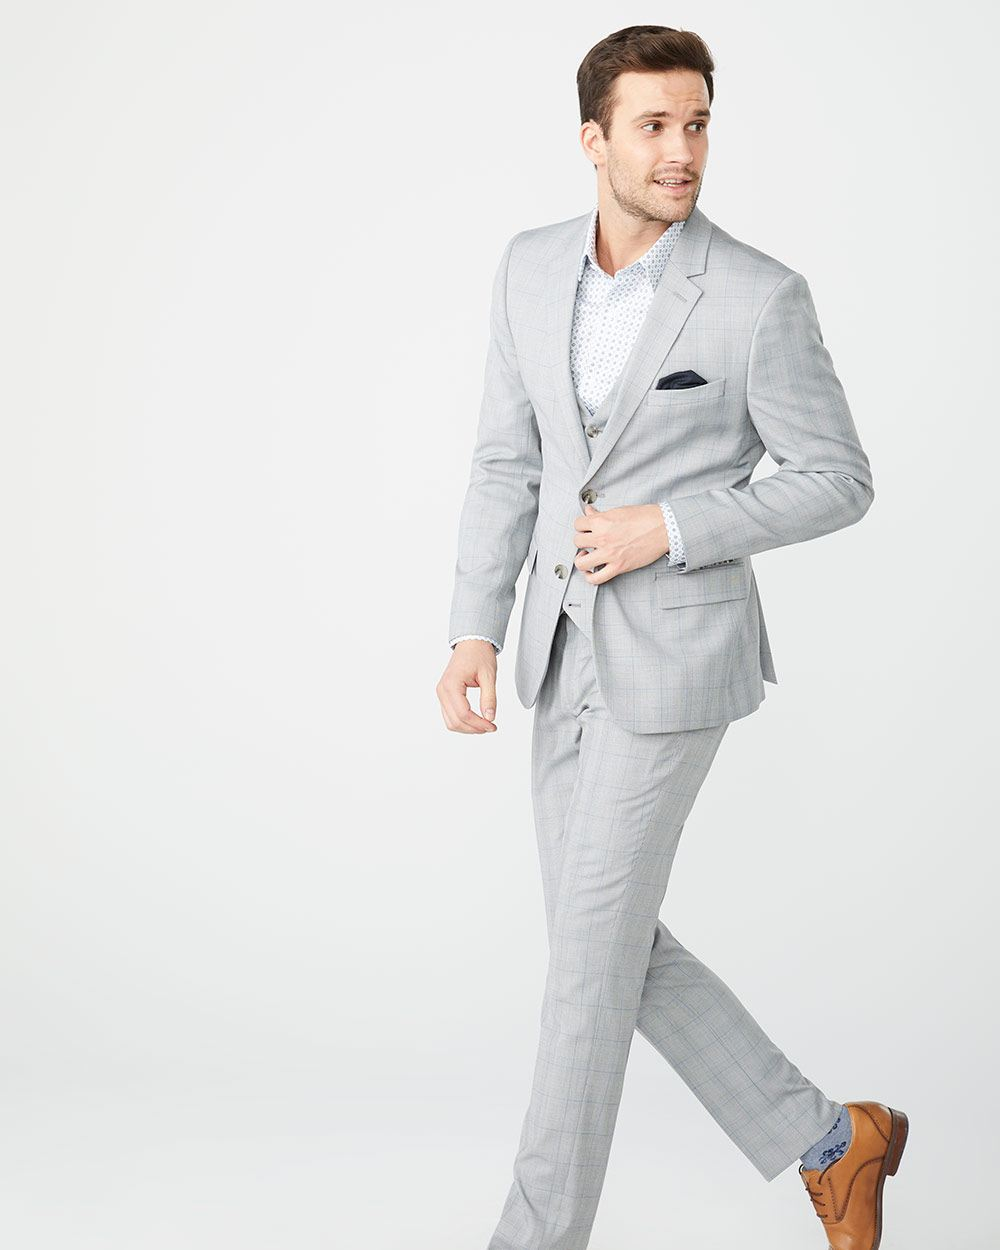 192bb86982e Slim Fit grey and blue check suit Blazer